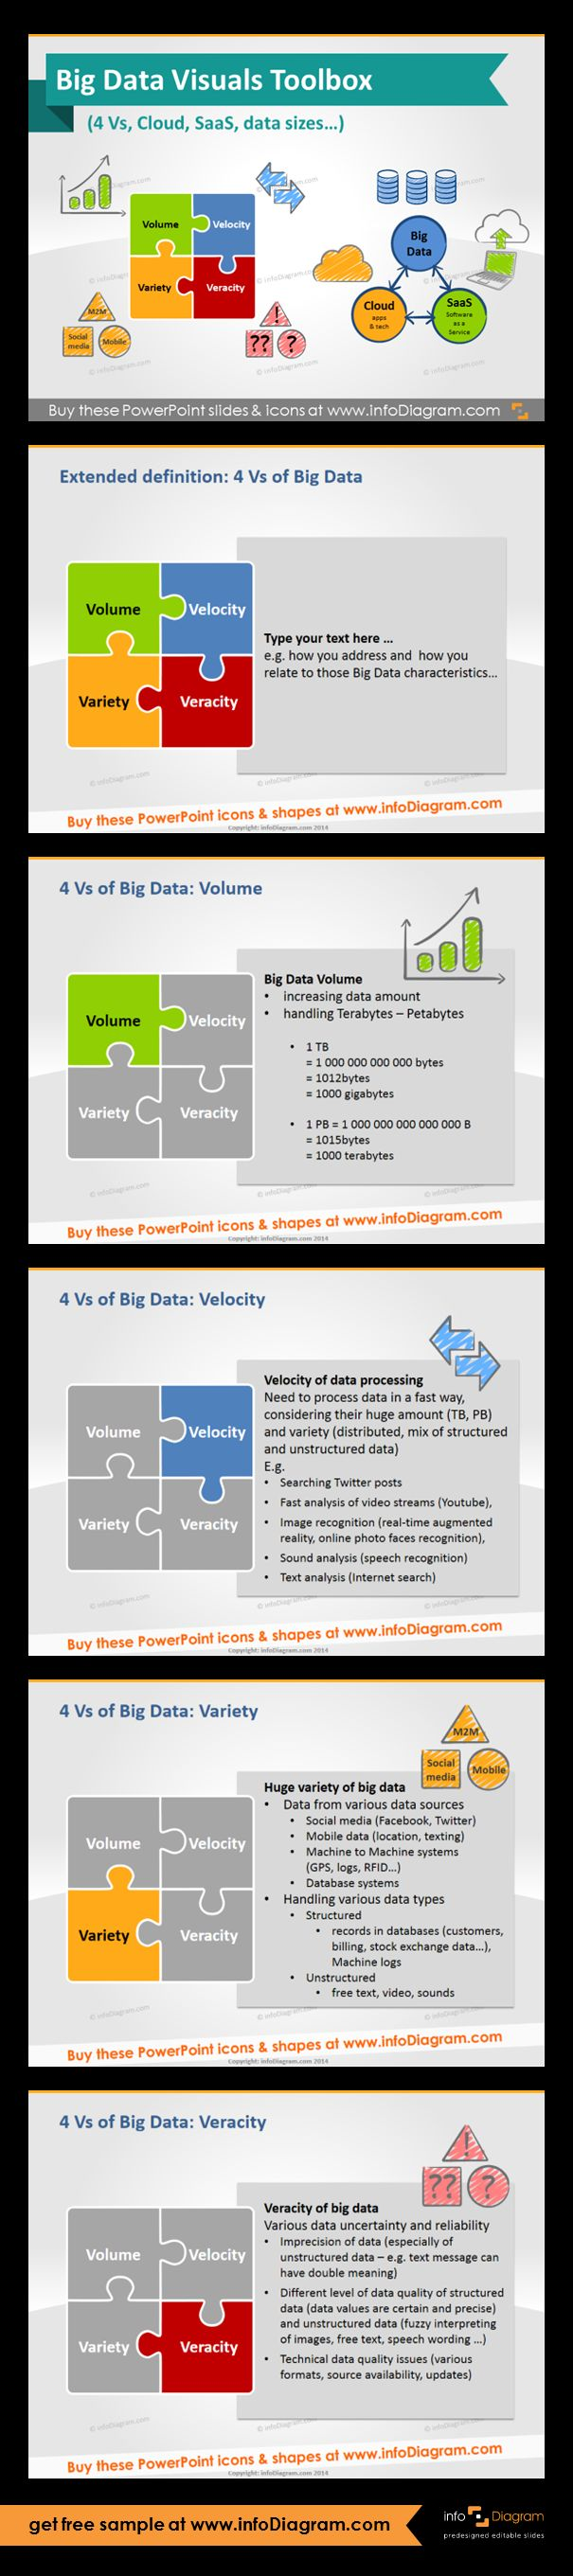 Big Data visuals toolbox for ppt - diagrams and icons. Fully editable in PowerPoint set of vector shapes fully editable by using built-in PowerPoint tools. Extended 4Vs of Big Data: Volume, Velocity, Variety, Veracity. Extended definition in the puzzle form.